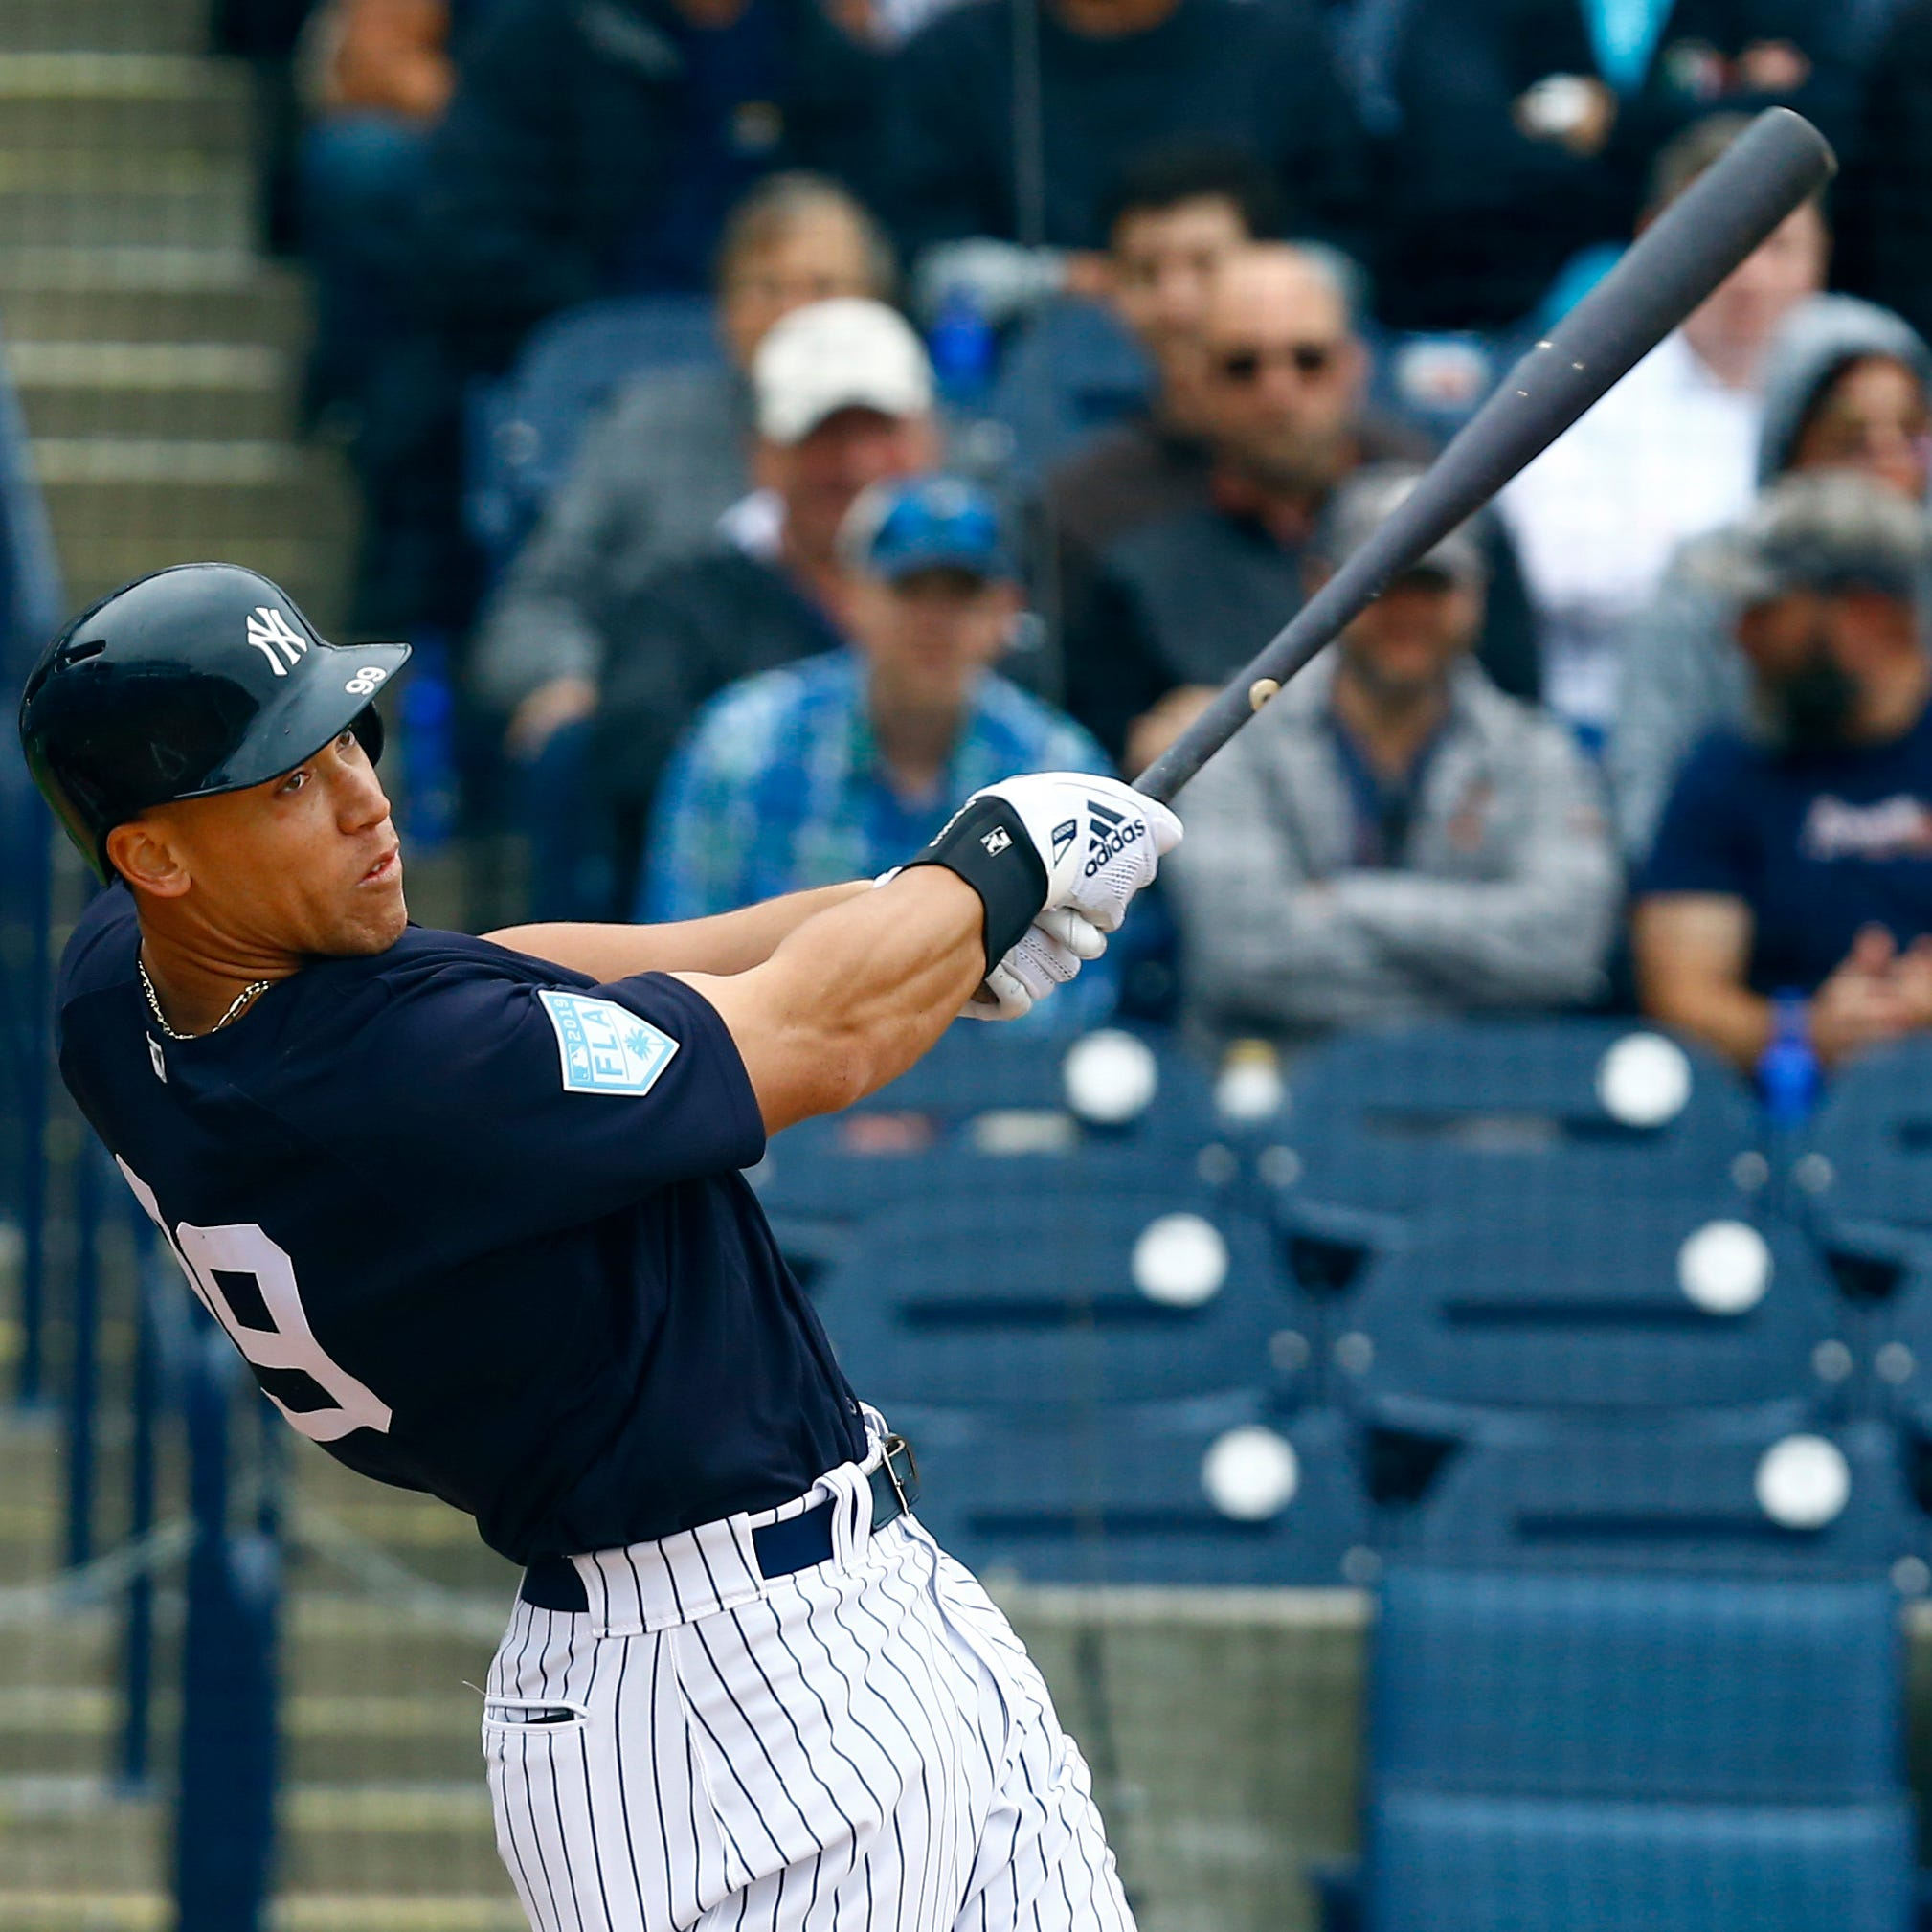 Enjoy the discount now, Yankees: Aaron Judge gets last inexpensive payday in pinstripes